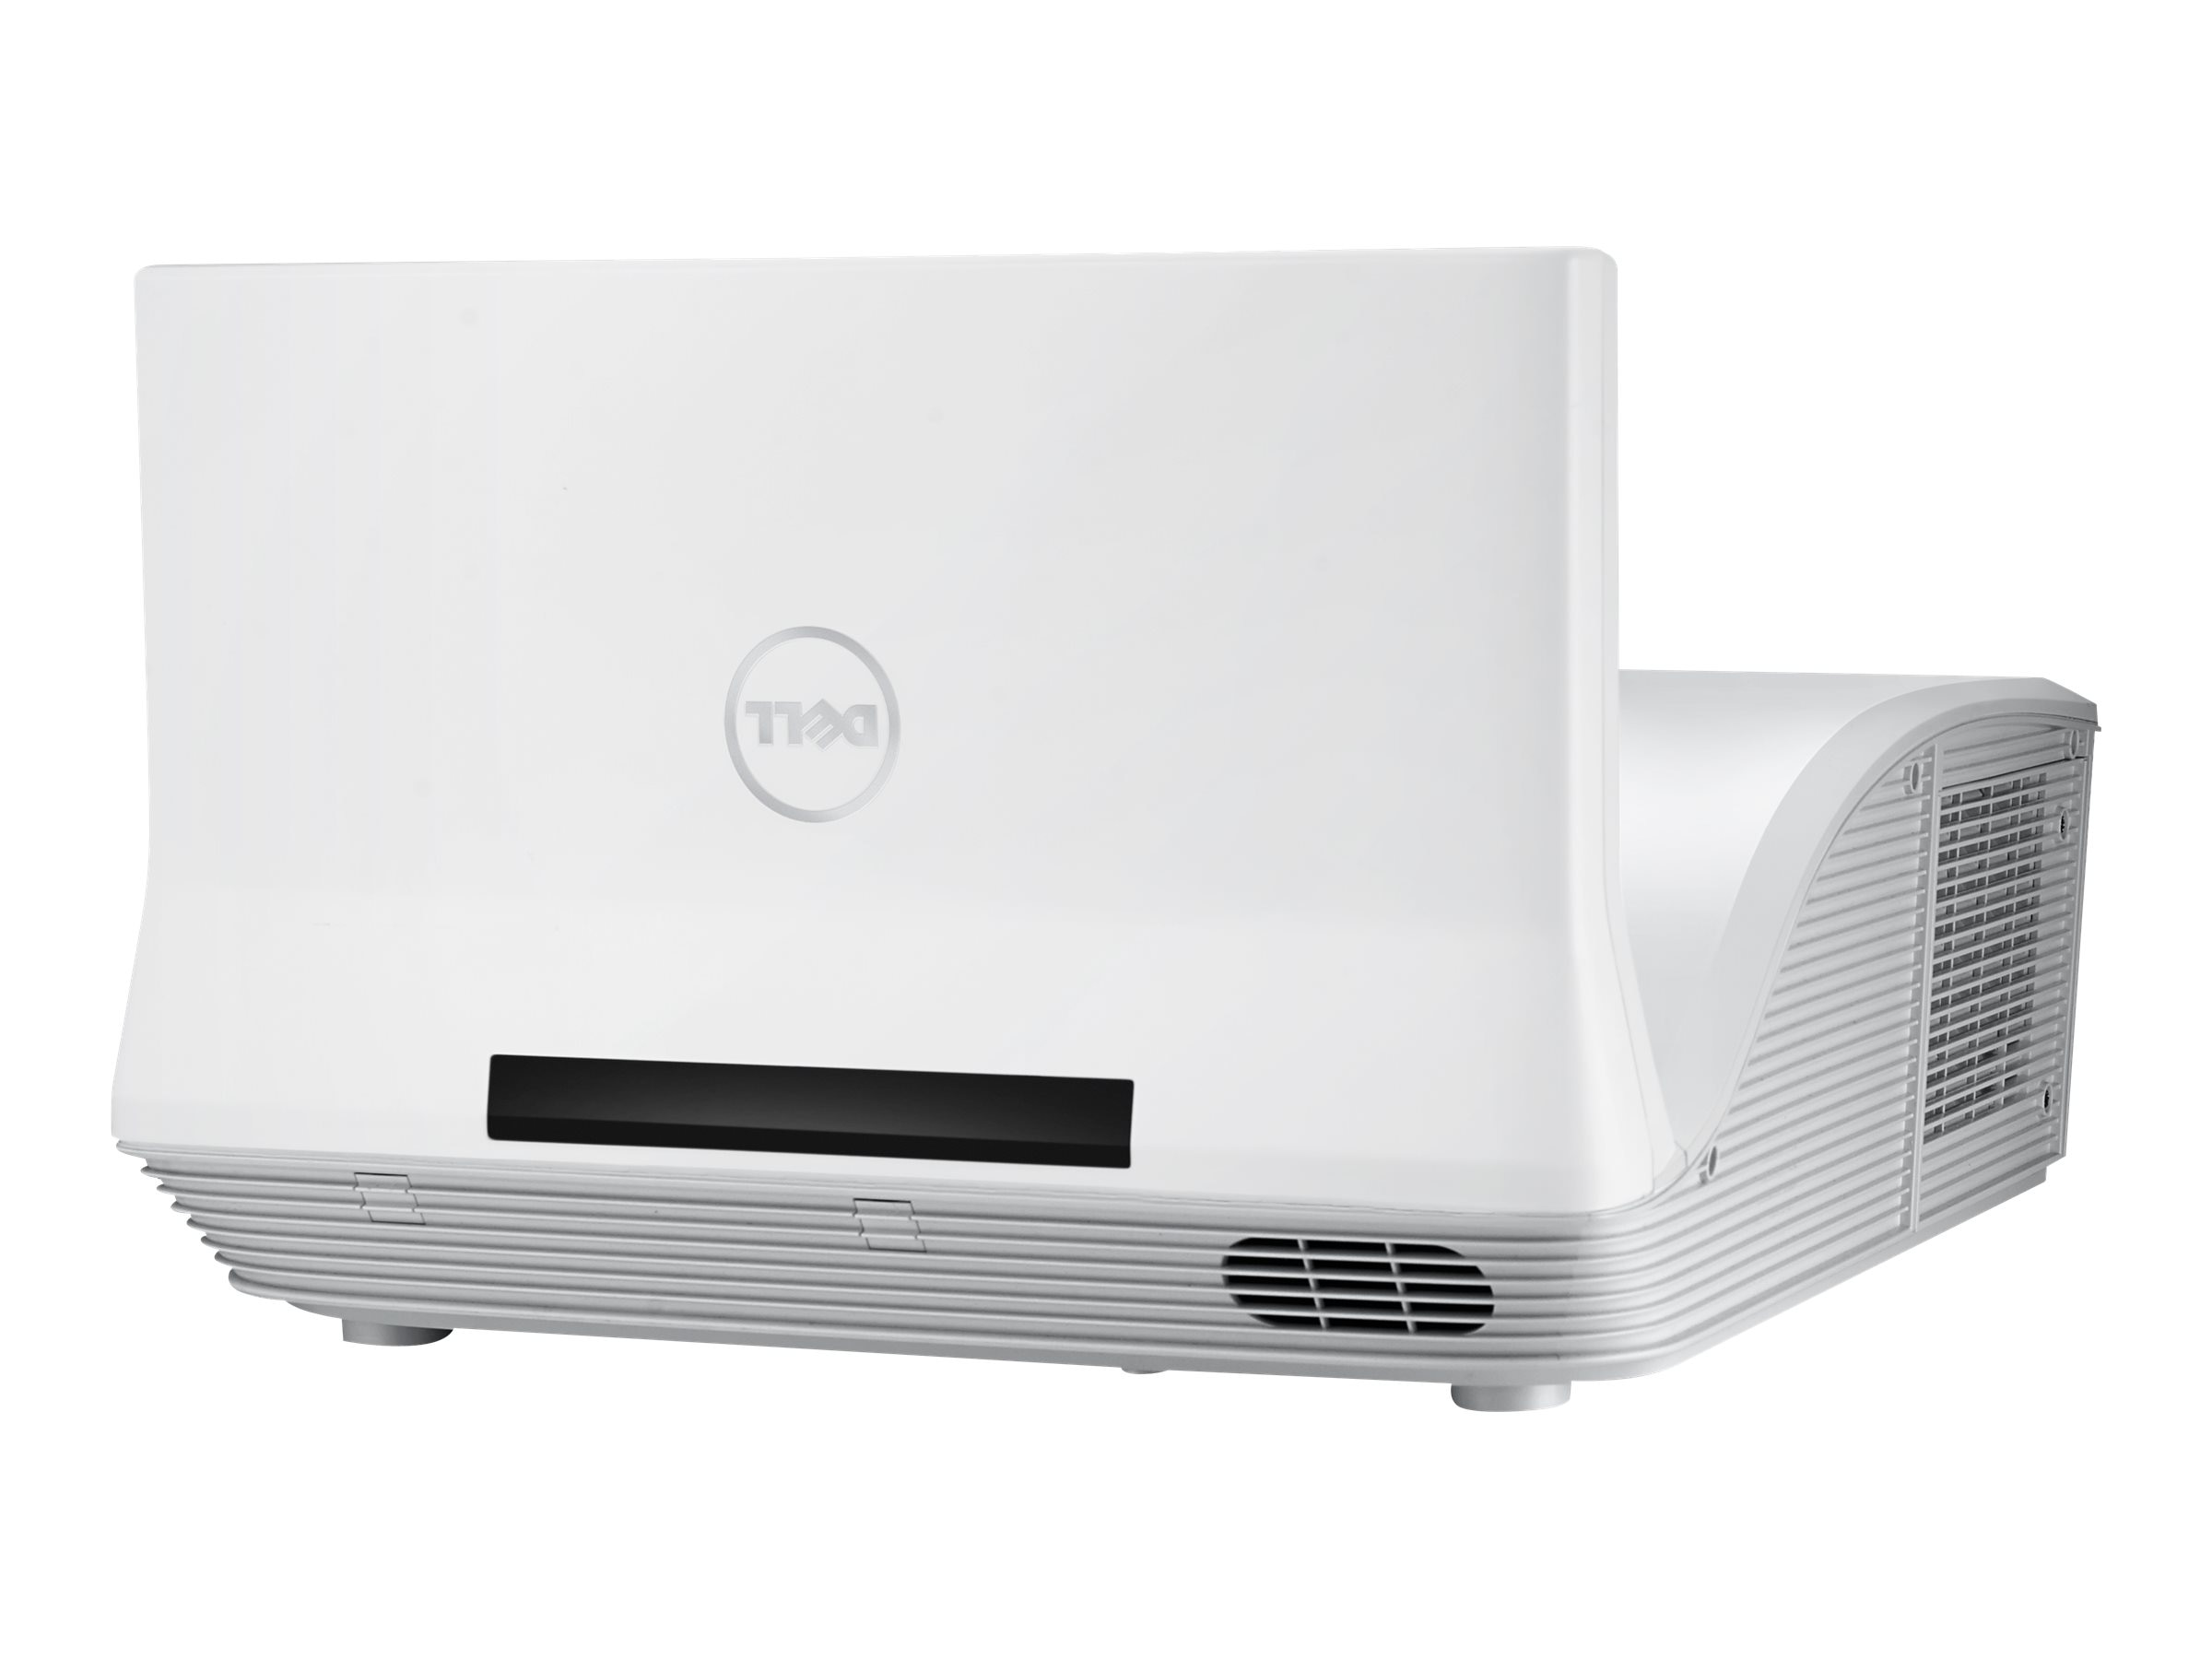 Dell S510 WXGA Interactive Projector, 3100 Lumens, White